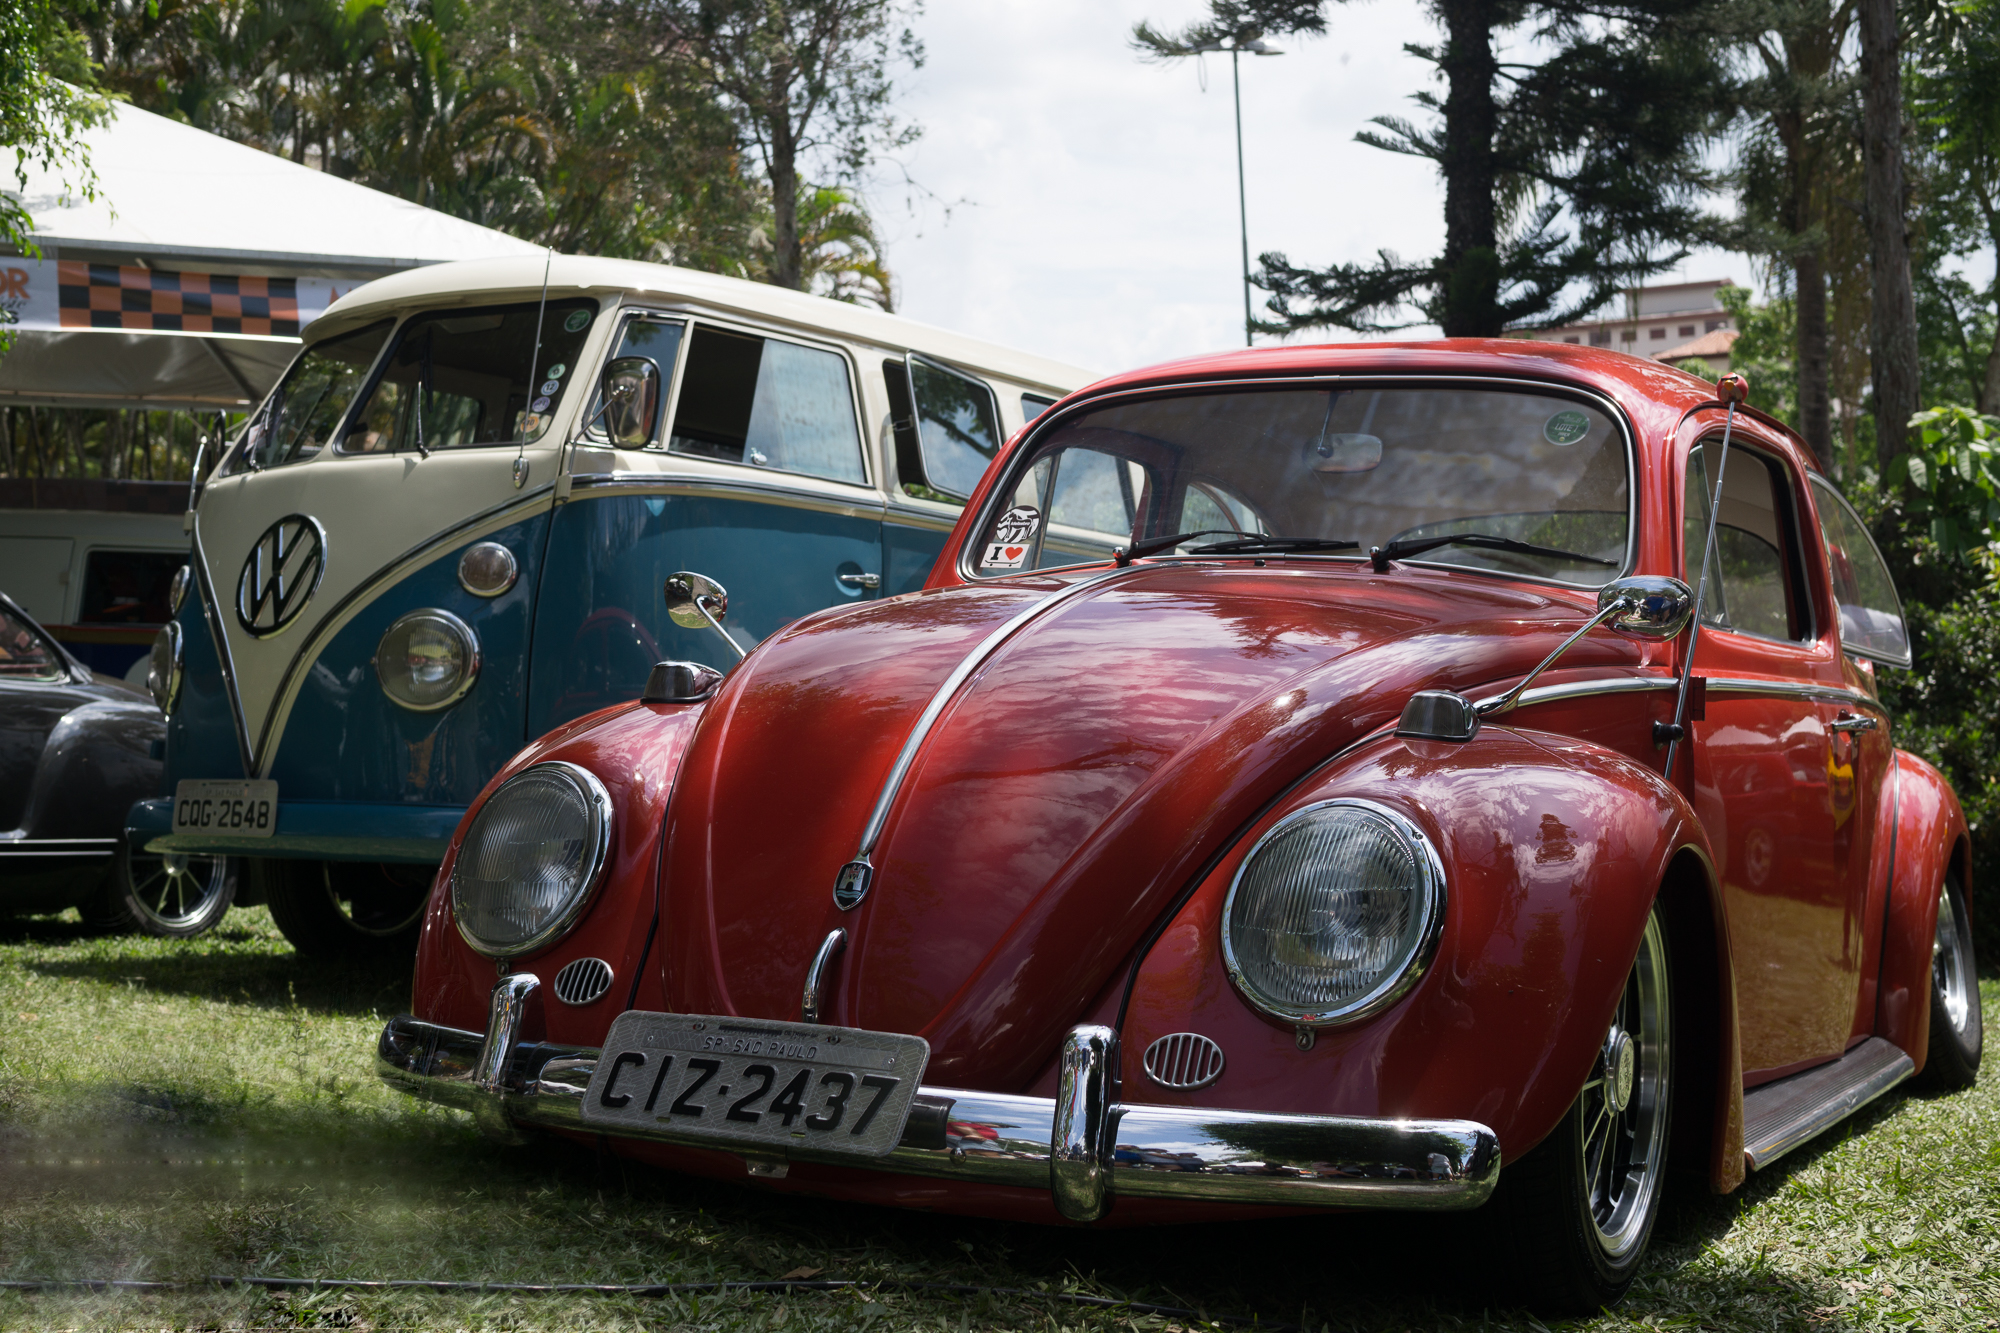 Red Fusca and Kombi Bus BGT